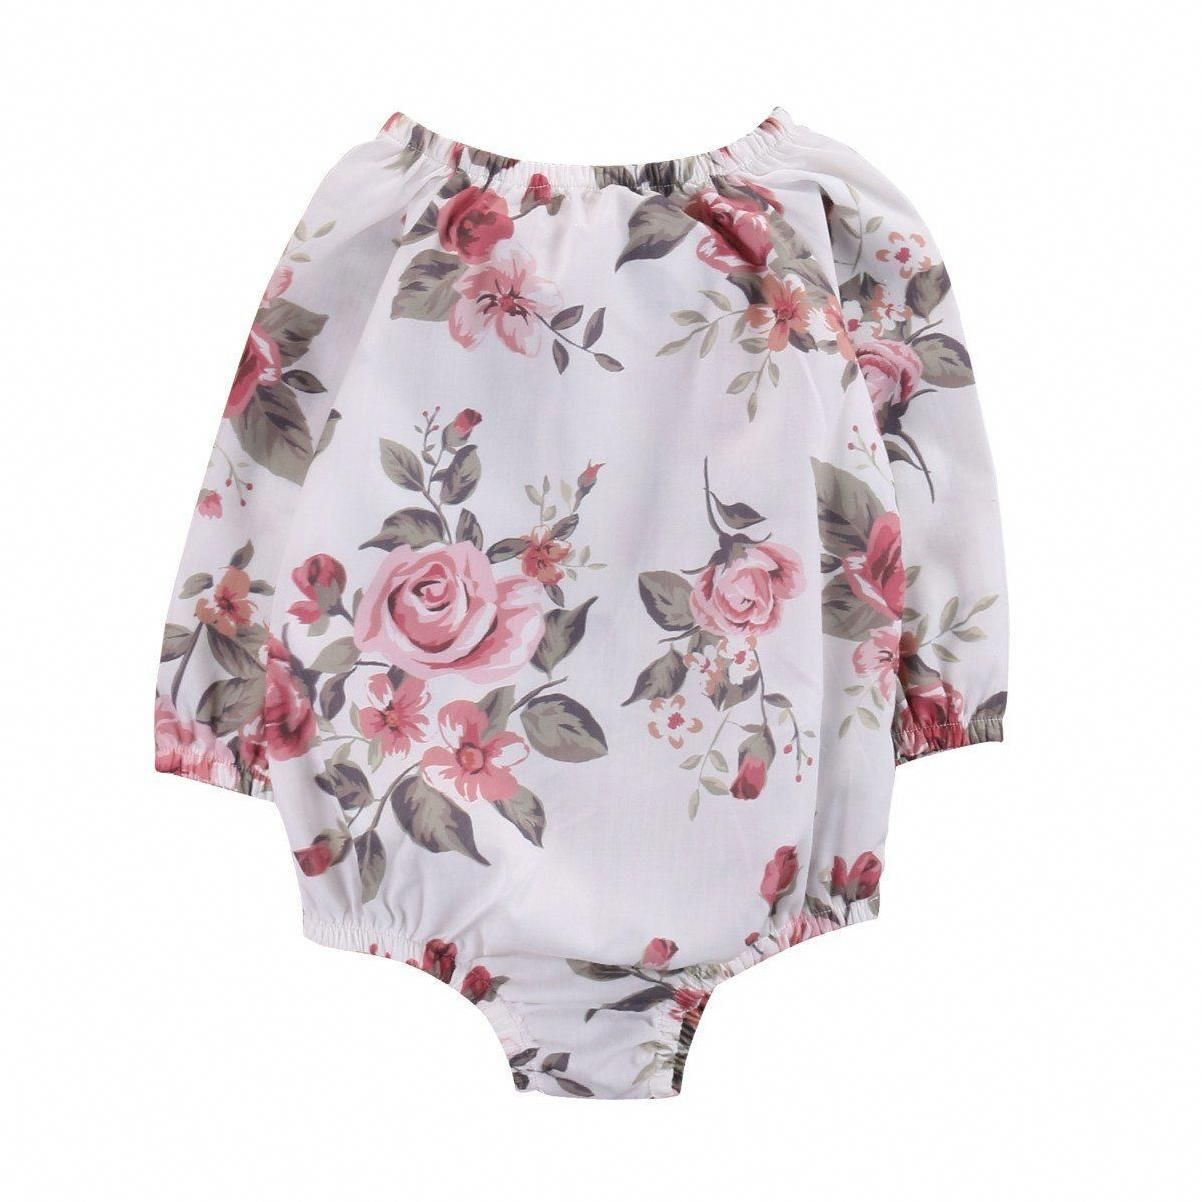 b6a0c9c4e8b0 Baby Clothing Shop